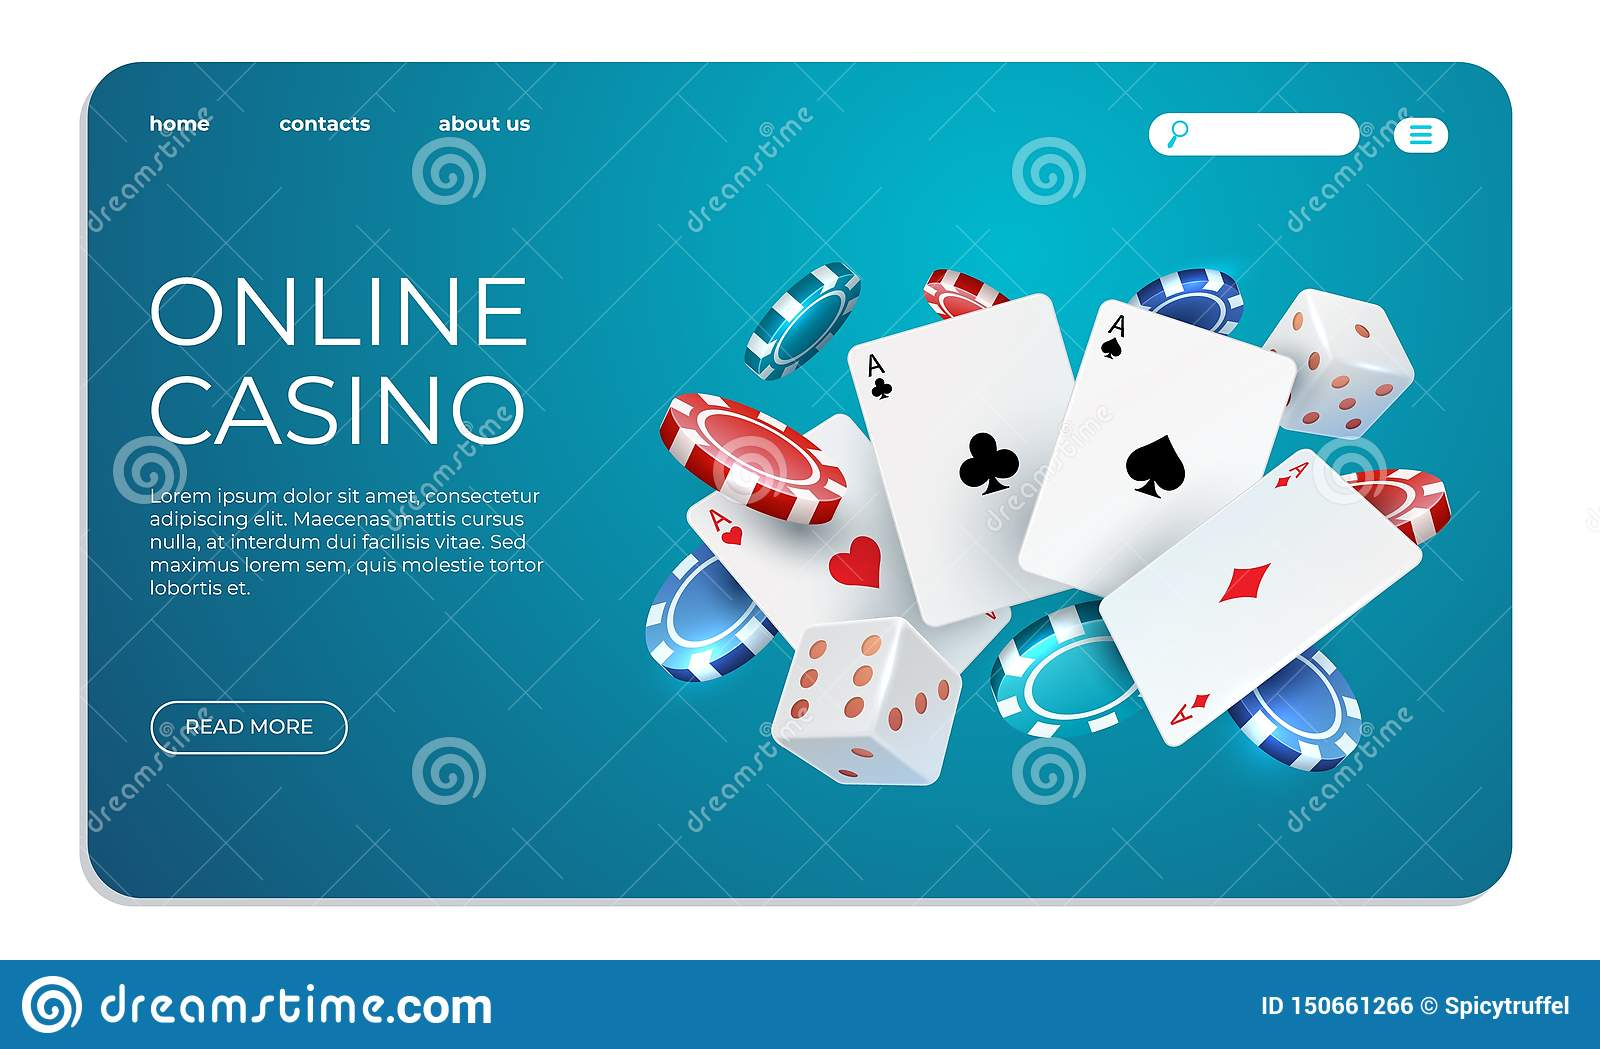 Online casino. Web landing page template for internet poker game. Vector illustration flying poker cards, chips game